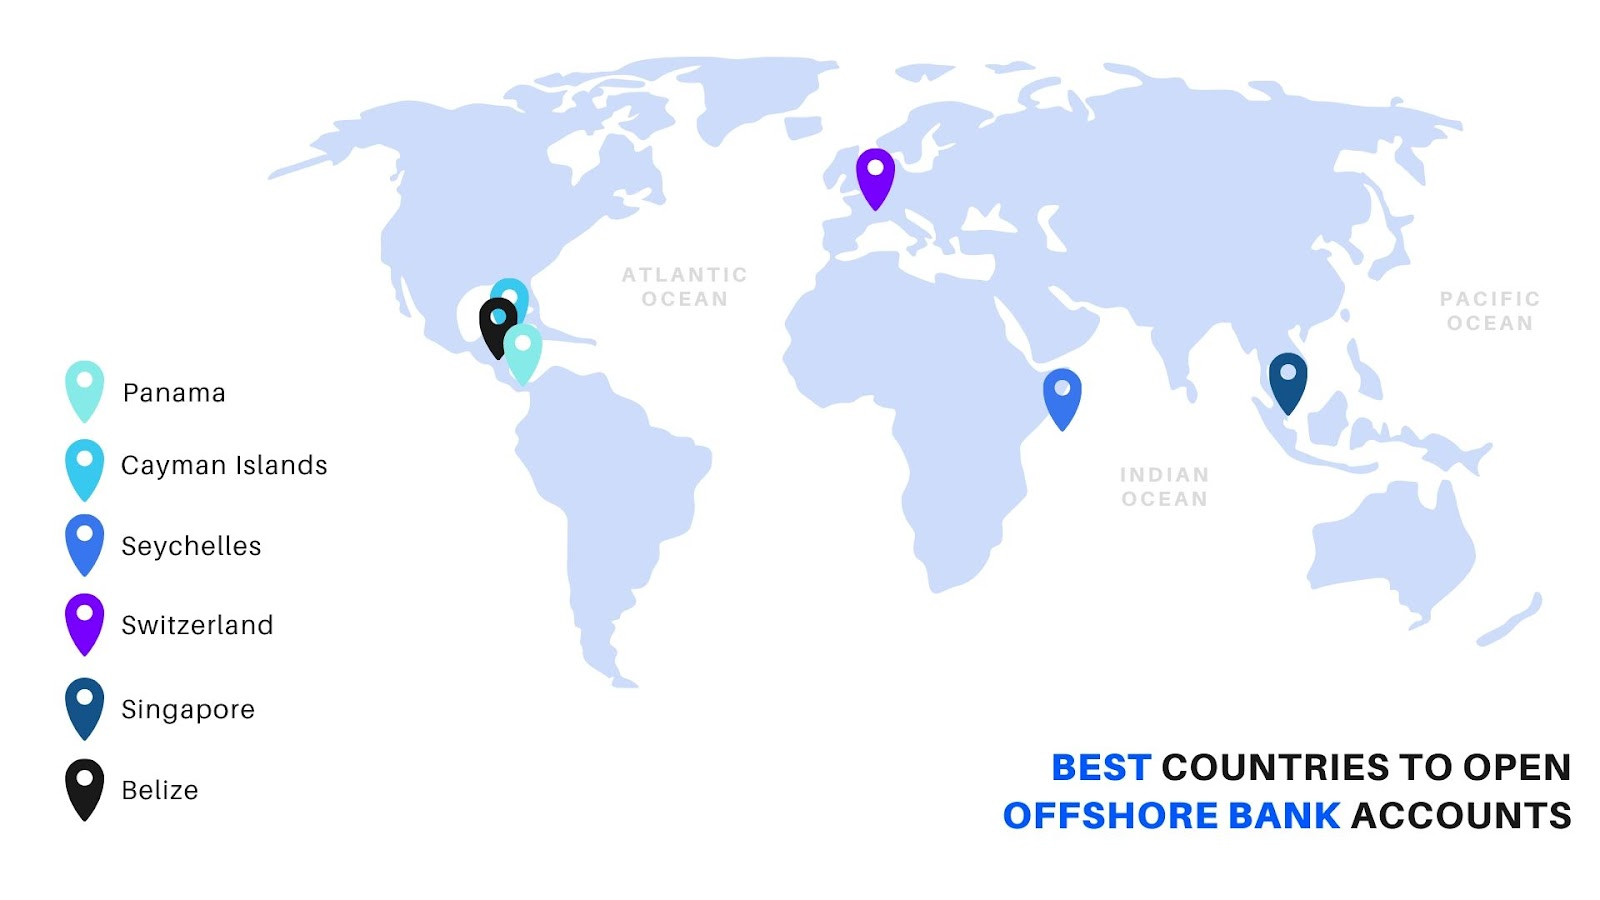 Best Offshore Bank Accounts: Map indicating Panama, Cayman Islands, Seychelles, Switzerland, Singapore, Belize